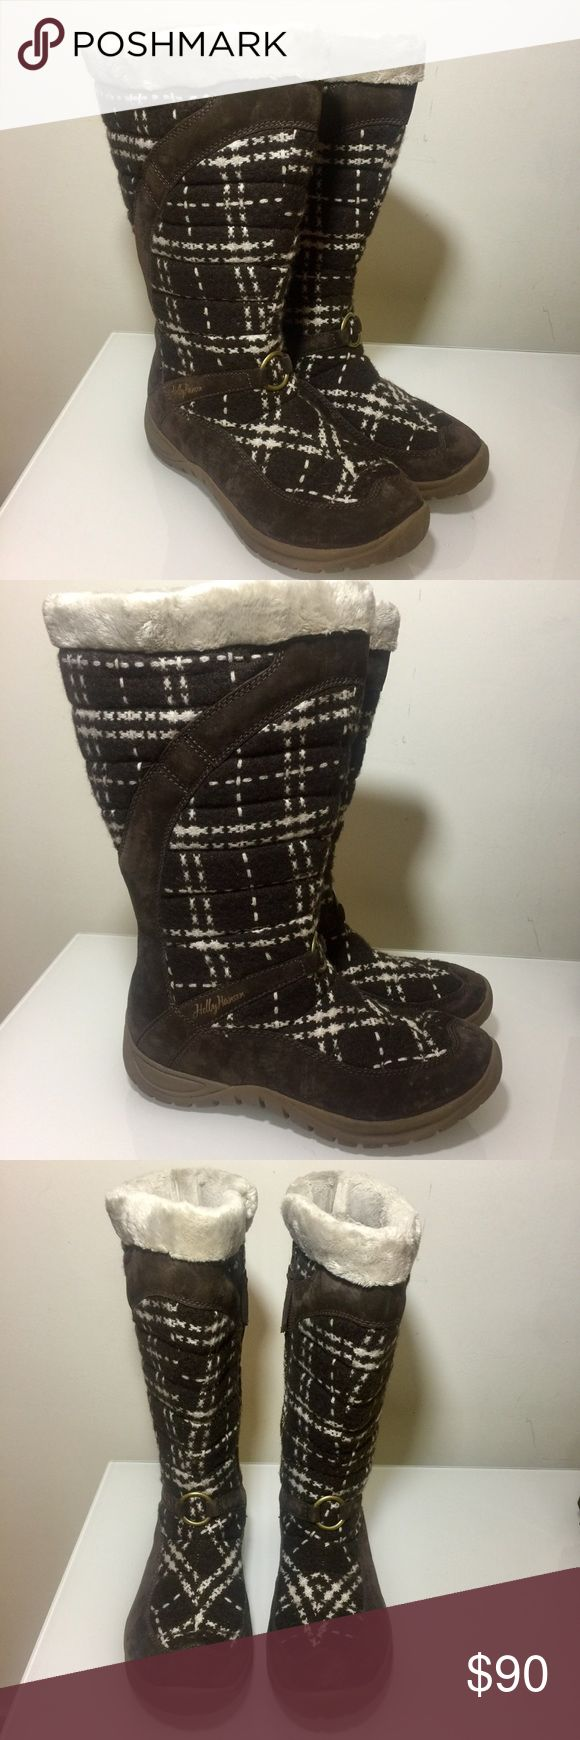 HELLY HANSEN  WINTER ALL-WEATHER BOOTS NWOT HELLY HANSEN WINTER ALL- WEATHER BOOTS  SUPER WARM AND SOFT INSIDE. WATER REPELLENT WITH NICE THICK NON SLIP RUBBER SOLES.  BROWN SUEDE WITH WOOL Helly Hansen Shoes Winter & Rain Boots